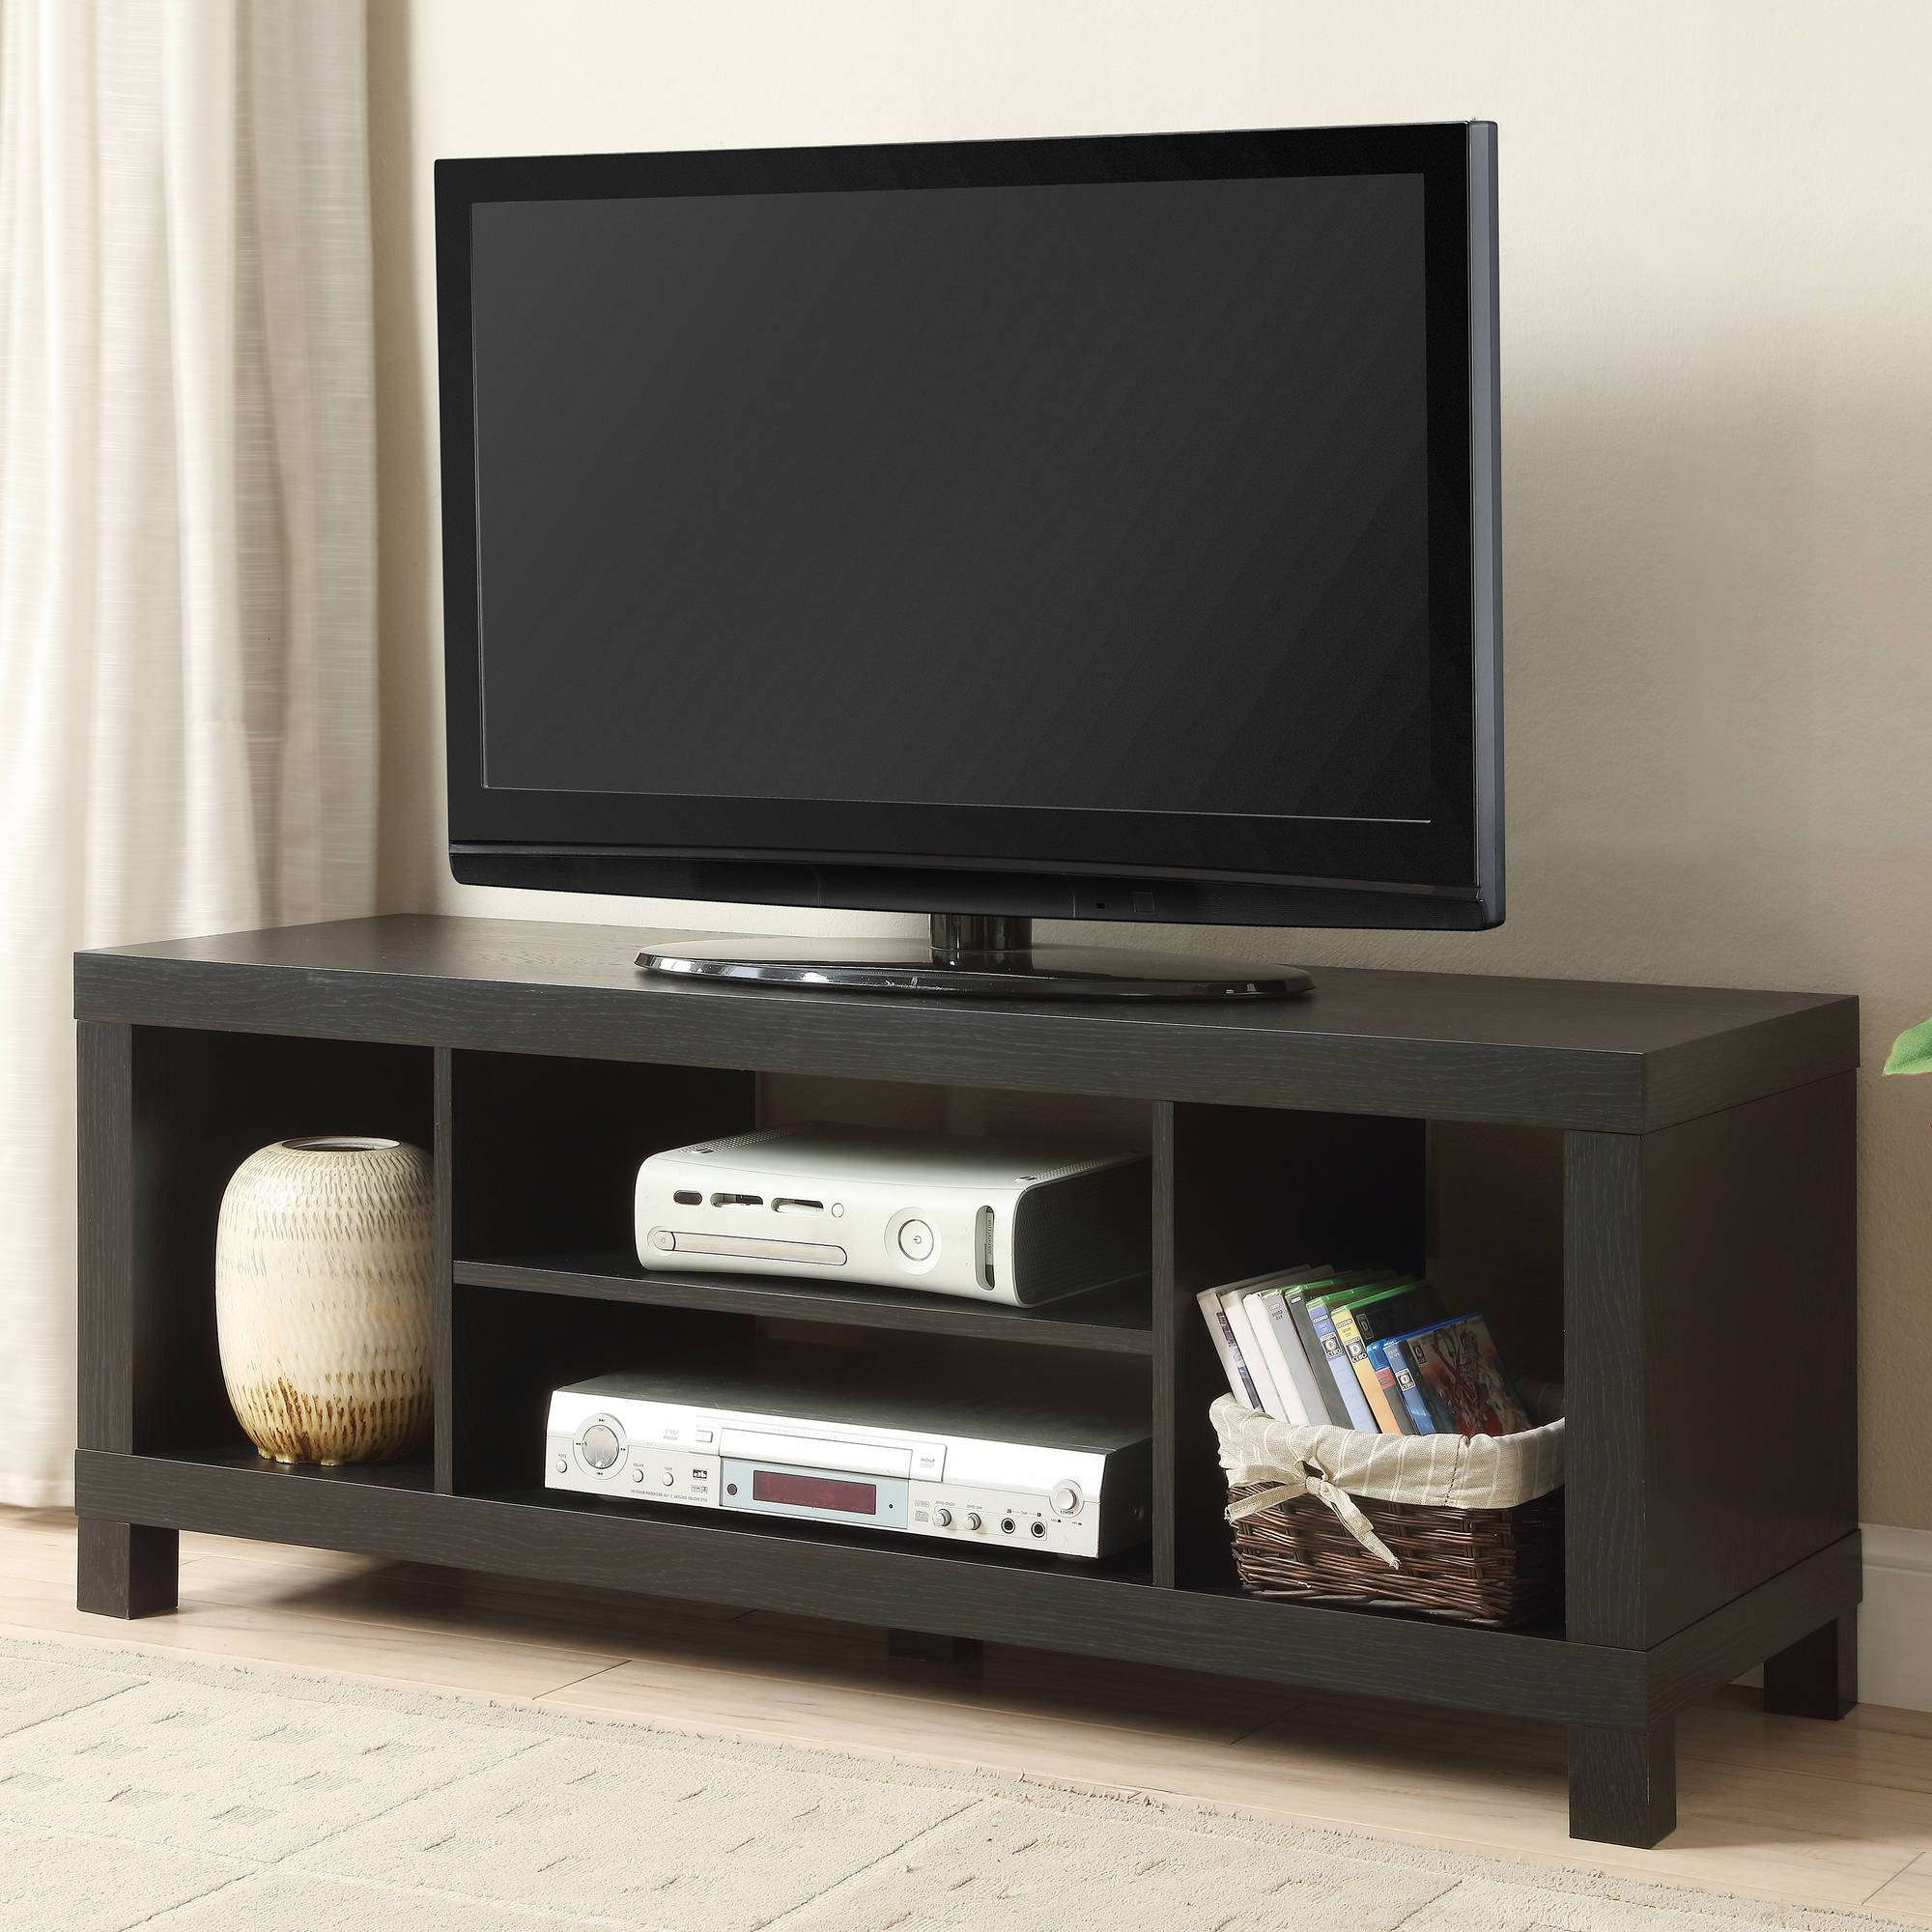 Tv : Bdua Amazing Tv Stands For Tube Tvs Amazon Com Furinno Dbr Bk Inside Elevated Tv Stands (View 3 of 15)